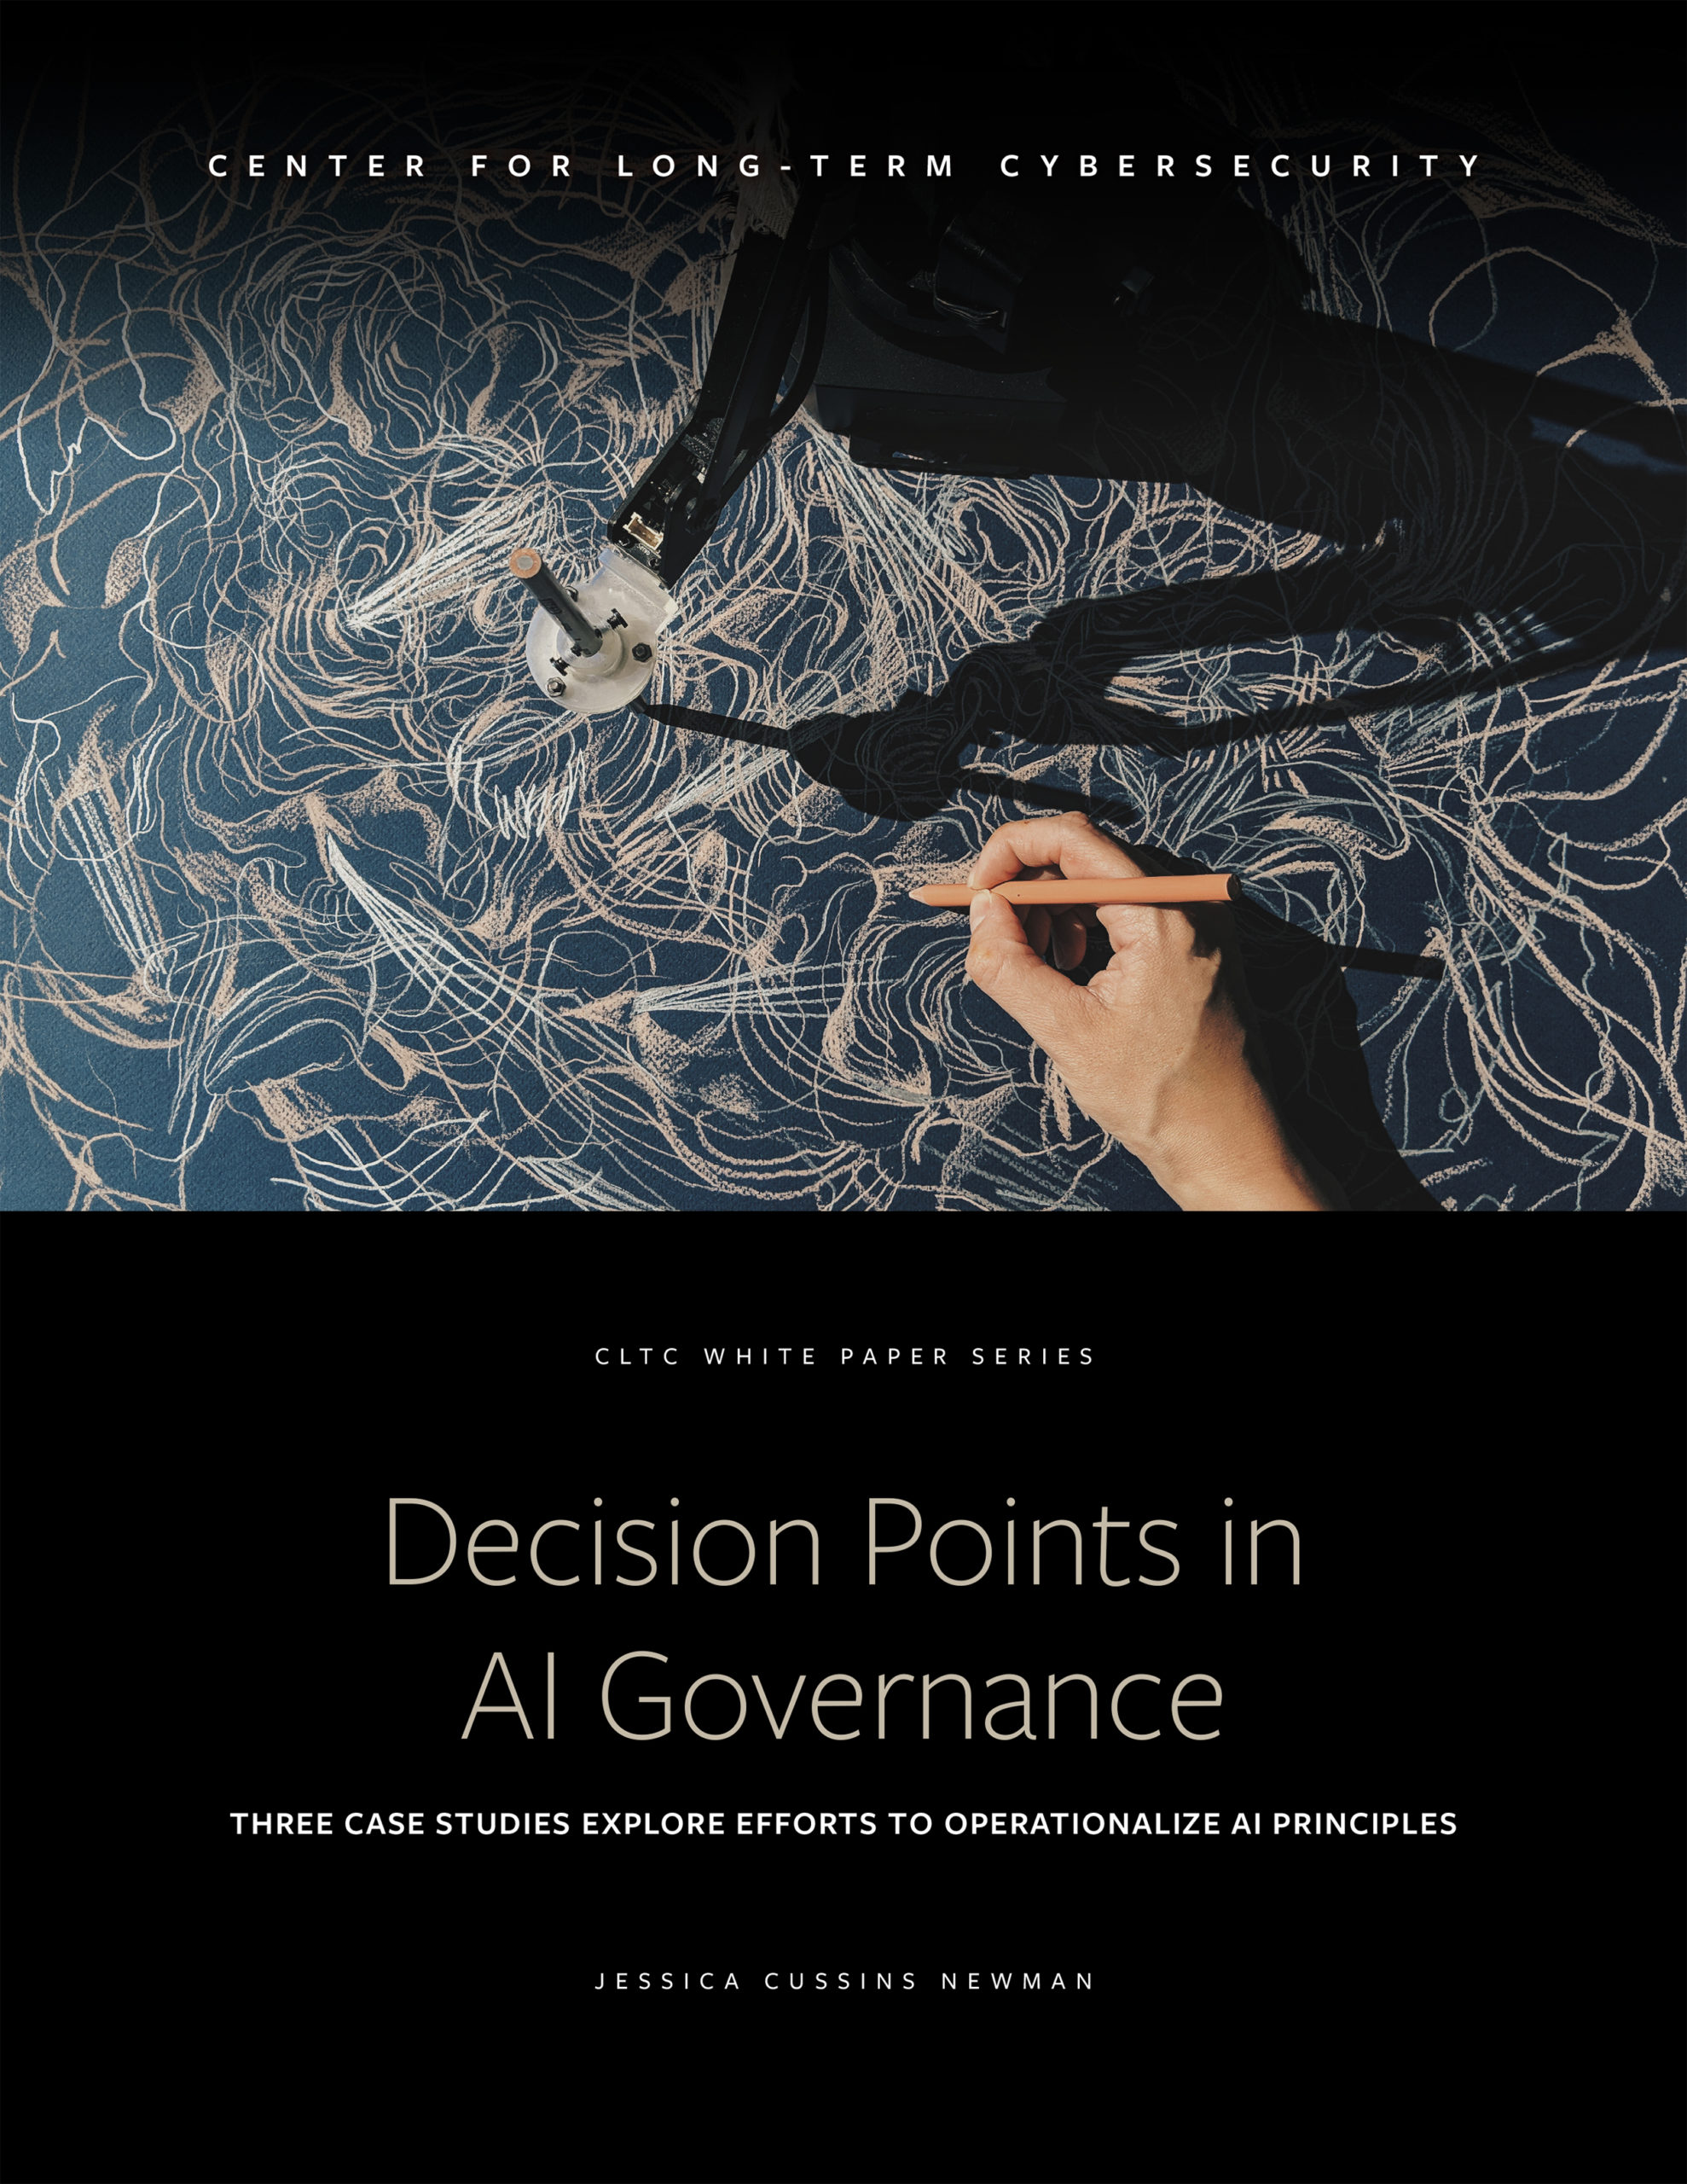 Decision Points in AI Governance: Three Case Studies Explore Efforts to Operationalize AI Principles